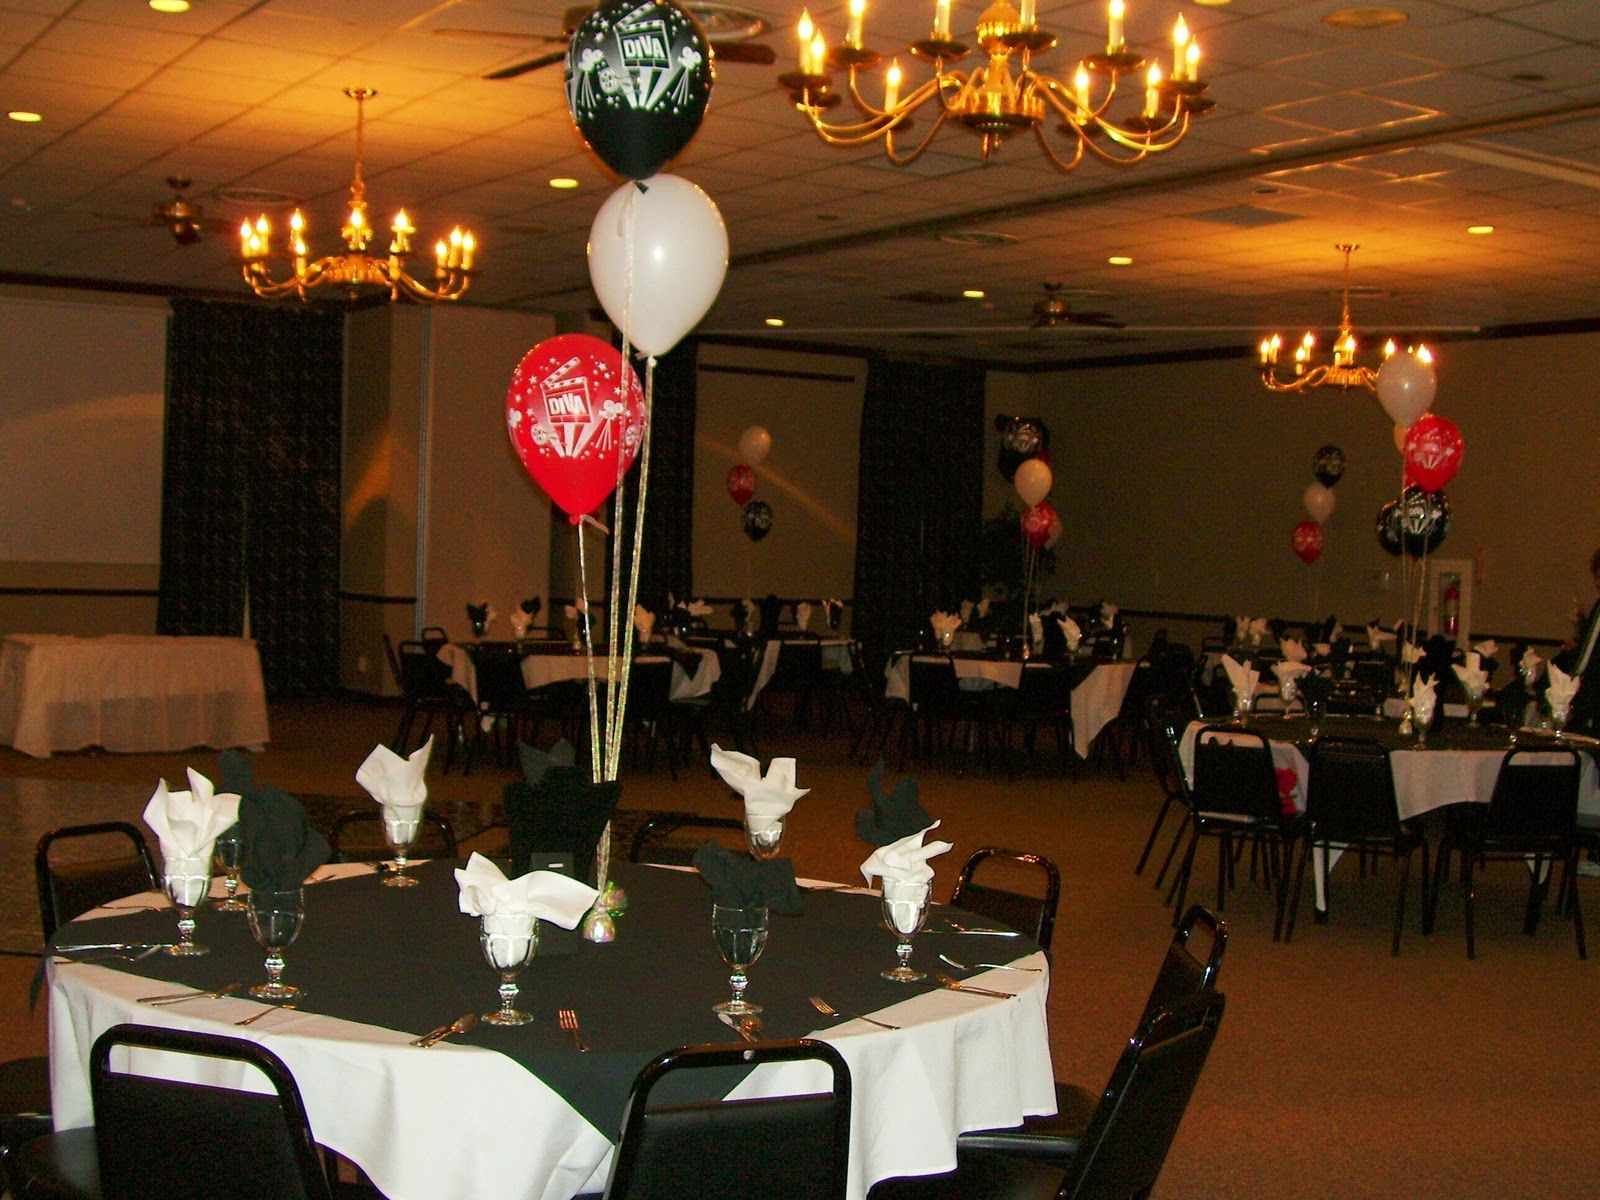 Adult birthday table decorations - 40th Birthday Party Balloon Decorations